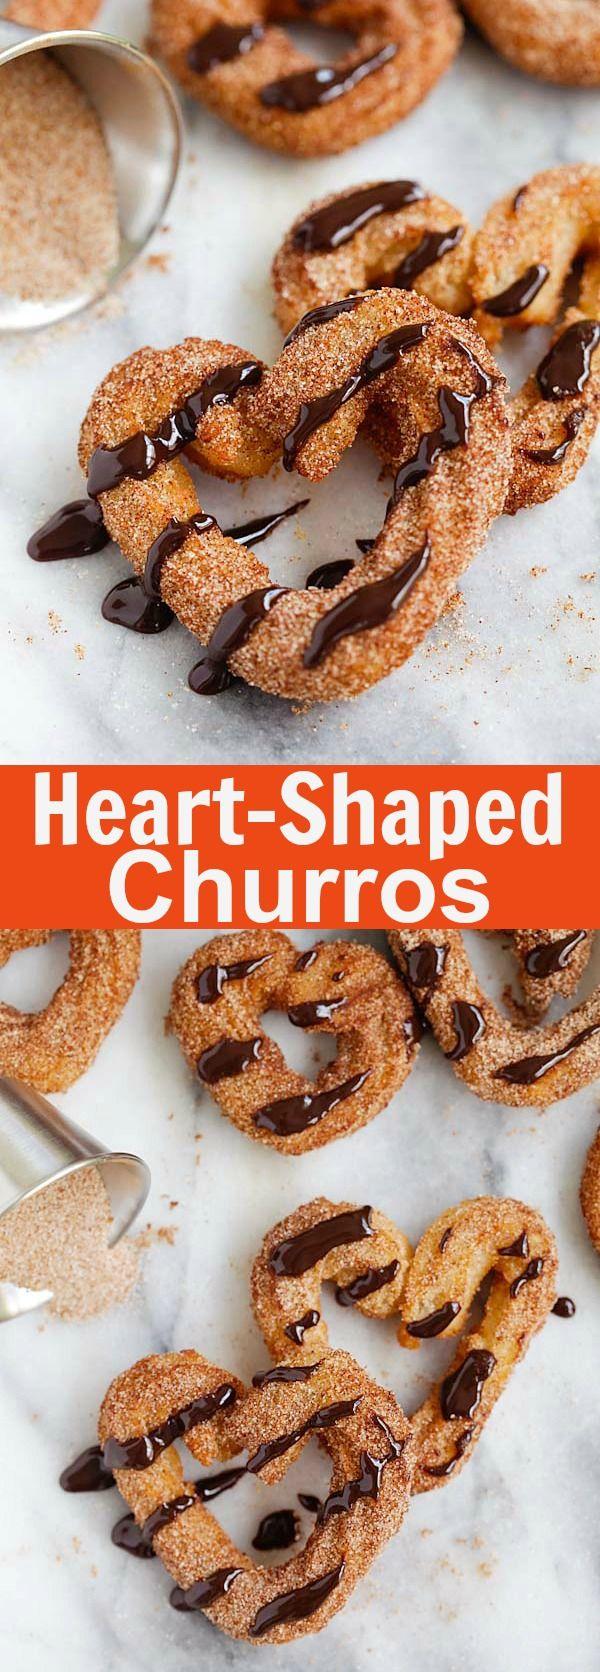 Heart-Shaped Cinnamon Rolls – the cutest and best cinnamon rolls ever, made into heart shape and stuffed with red cherries. So adorable   rasamalaysia.com